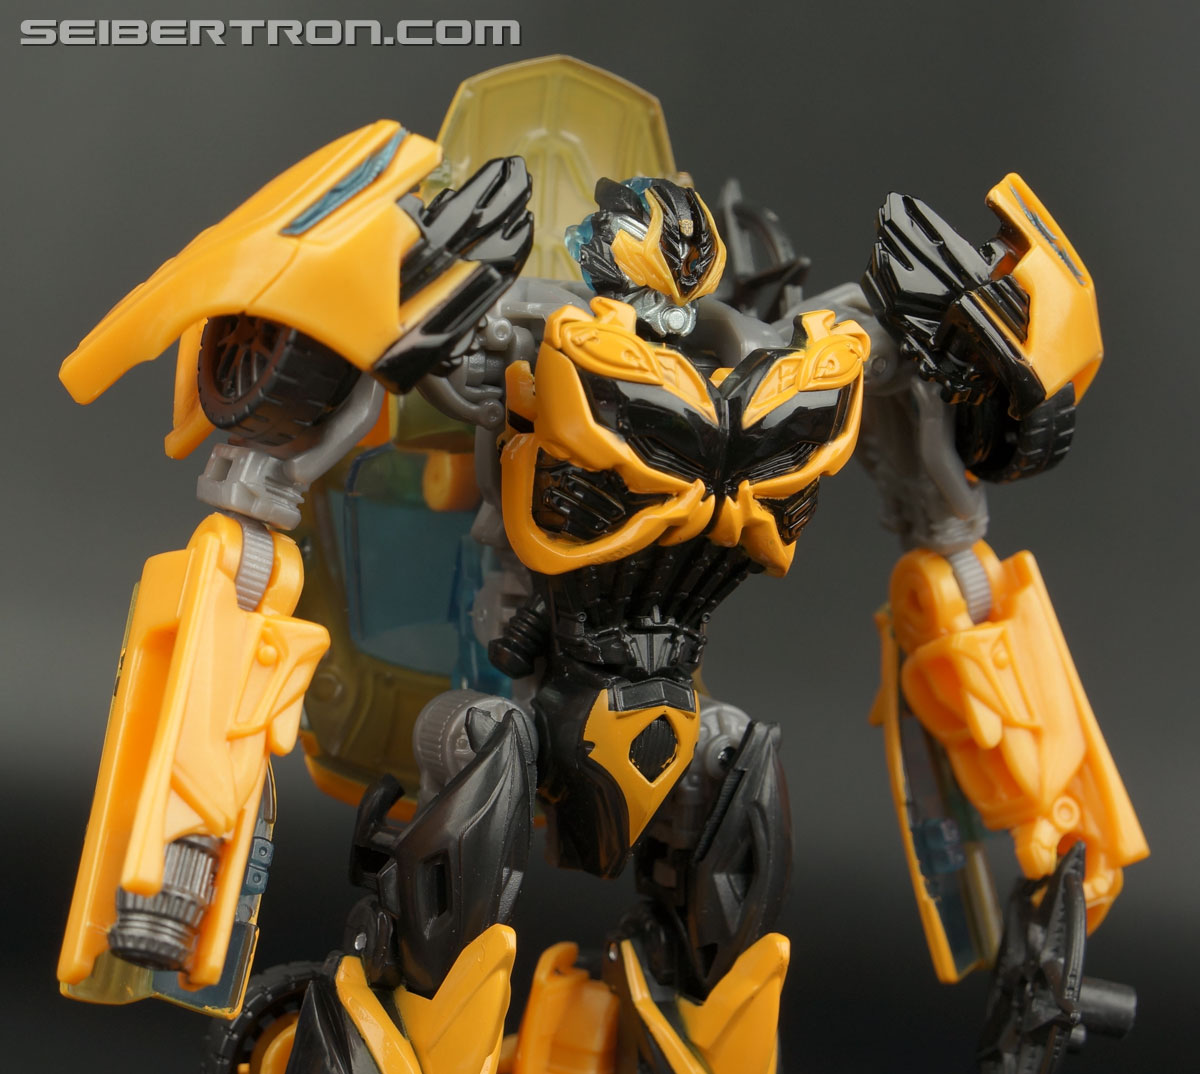 Transformers Age of Extinction: Generations Bumblebee (Image #87 of 190)